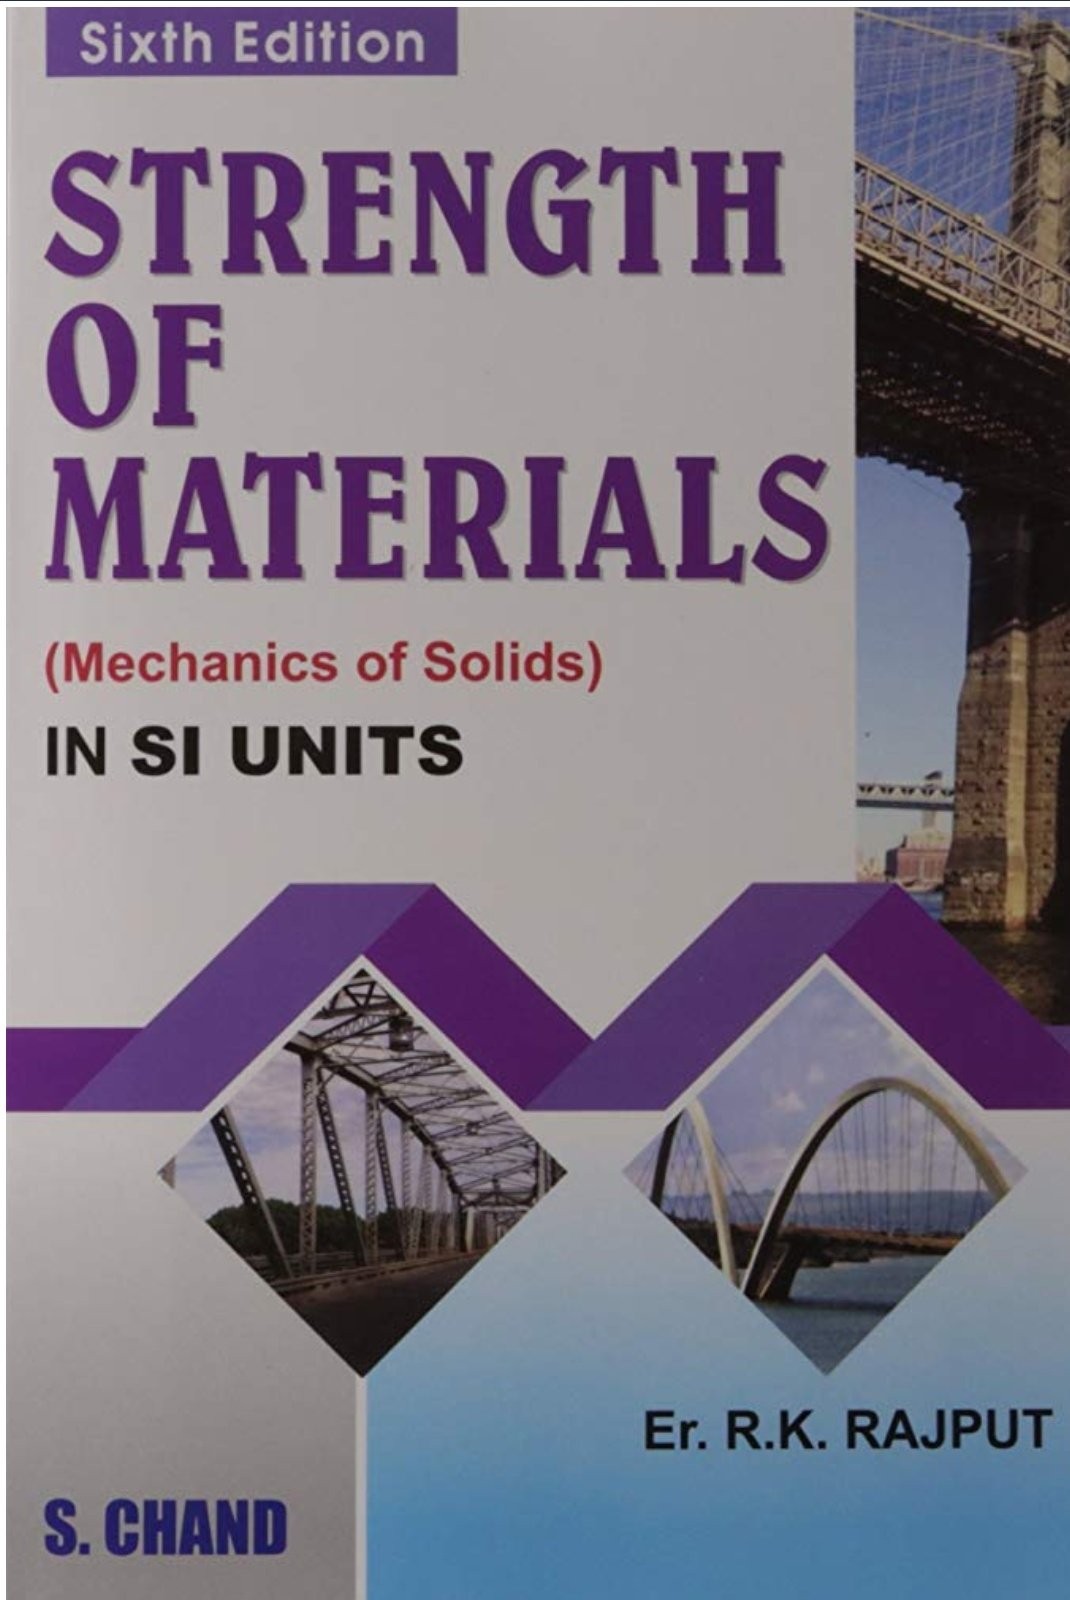 Strength Of Materials Full Book Pdf